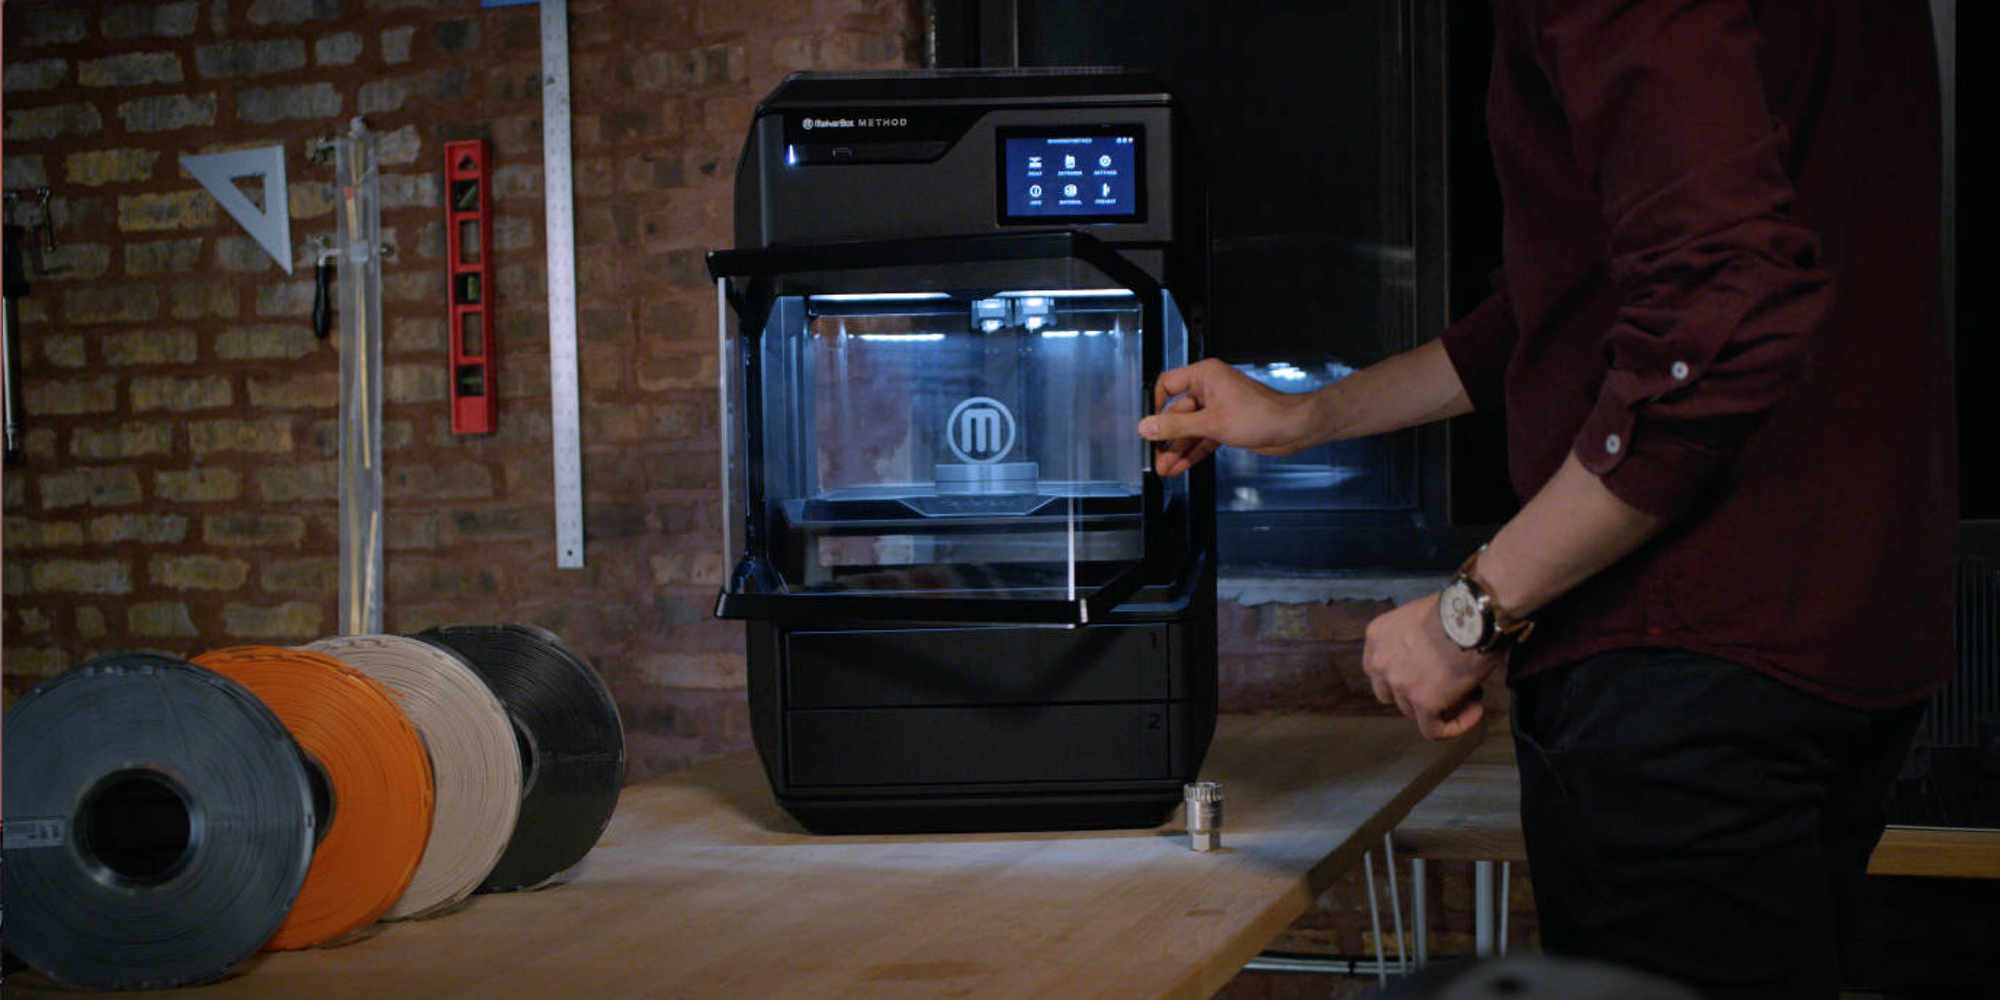 MakerBot's new Method 3D Printer pairs industrial precision with a desktop design and premium cost